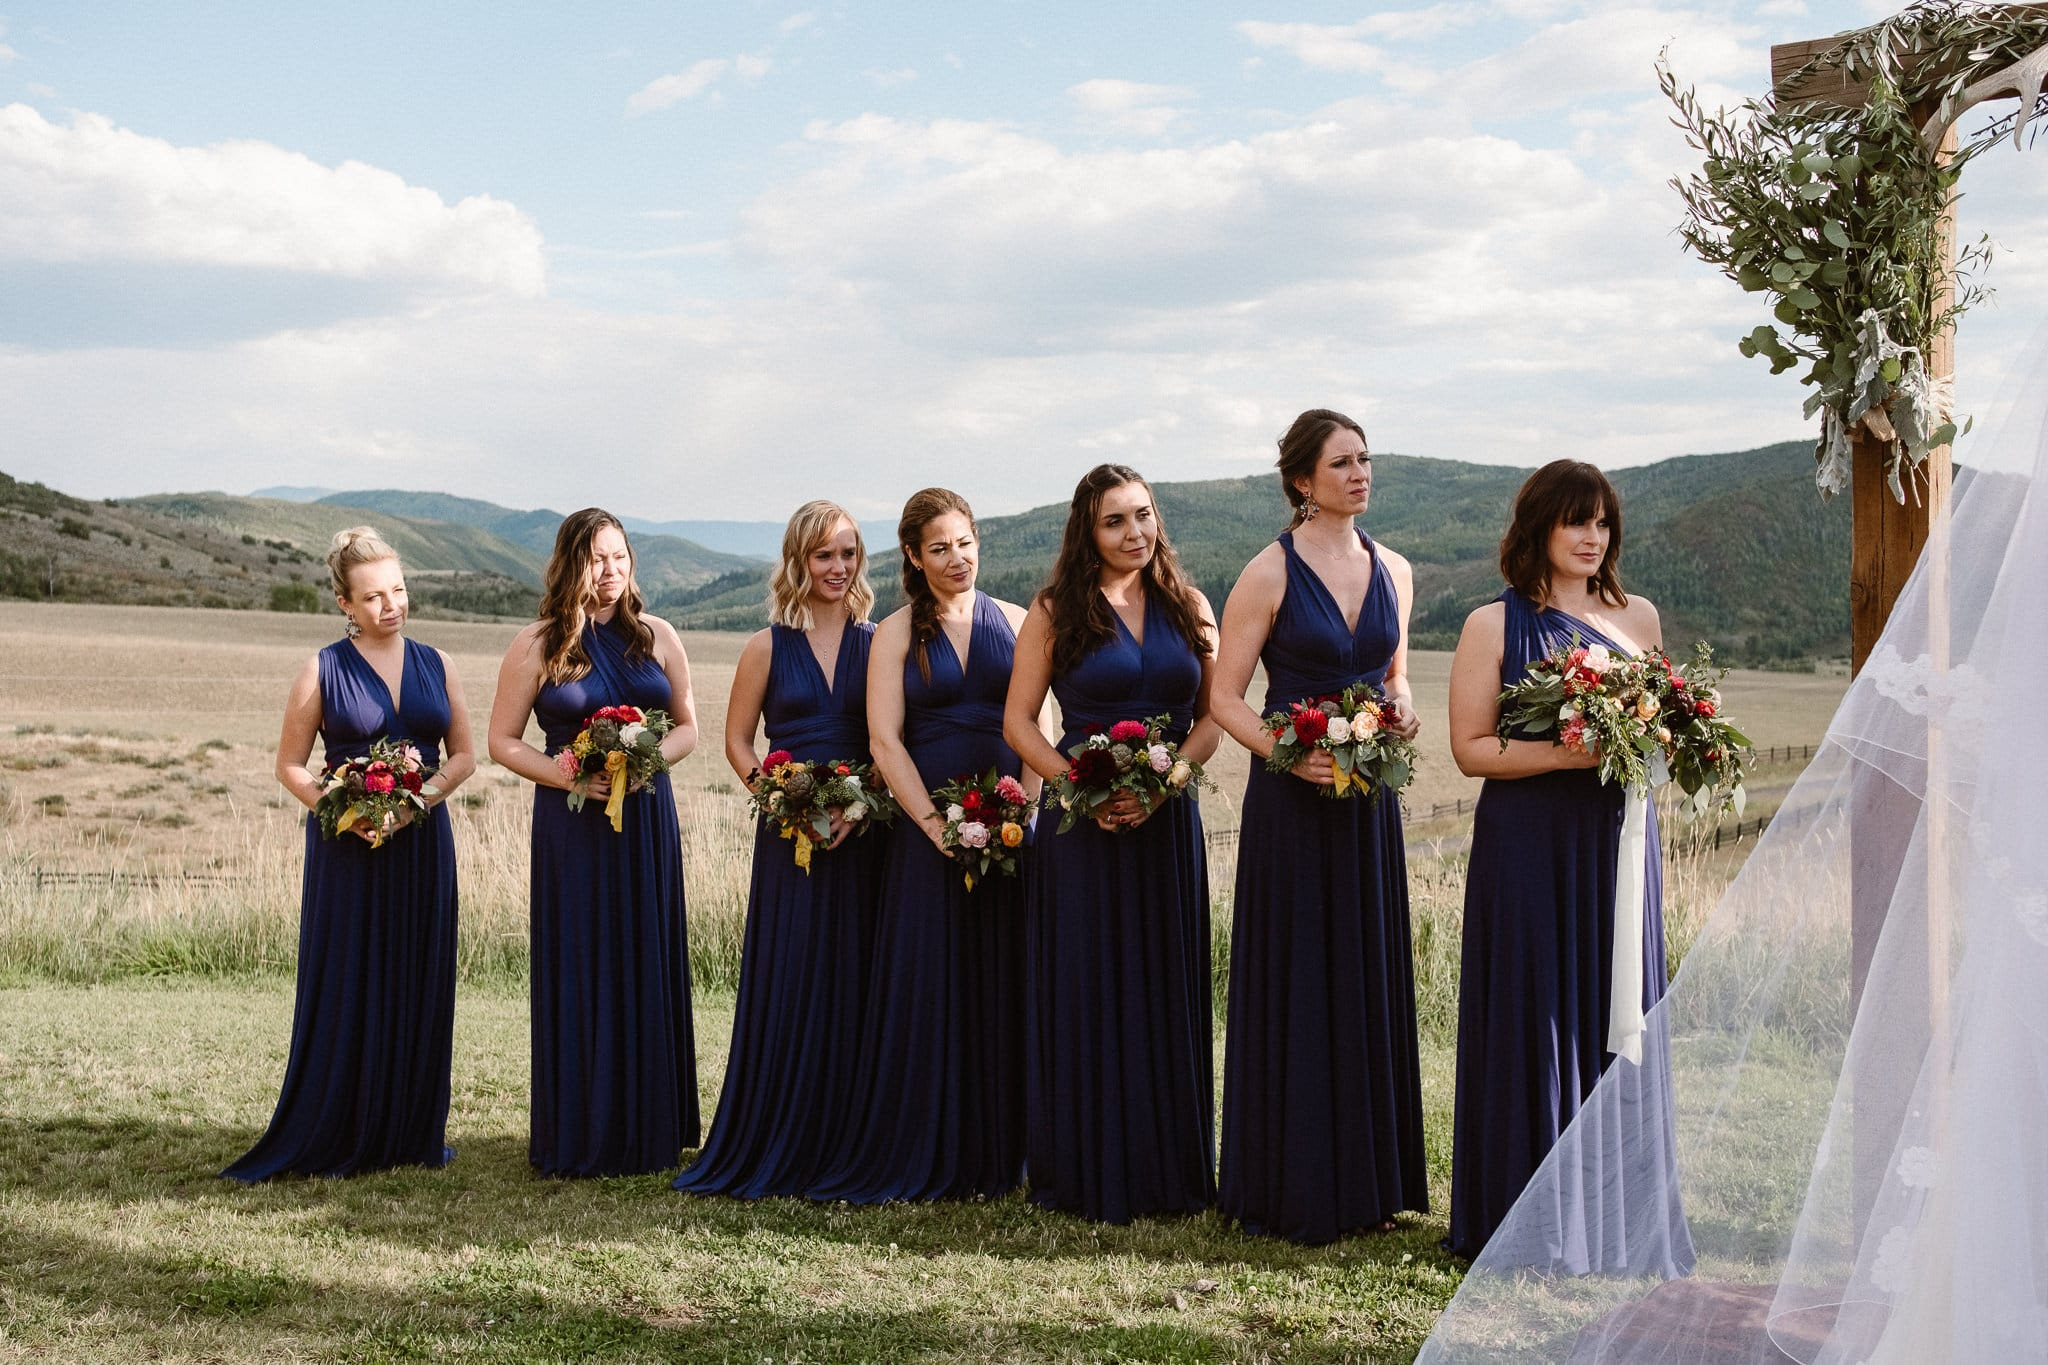 Steamboat Springs wedding photographer, La Joya Dulce wedding, Colorado ranch wedding venues, outdoor wedding ceremony, bridesmaids watching wedding ceremony, bridesmaids in dark blue navy multi way dresses